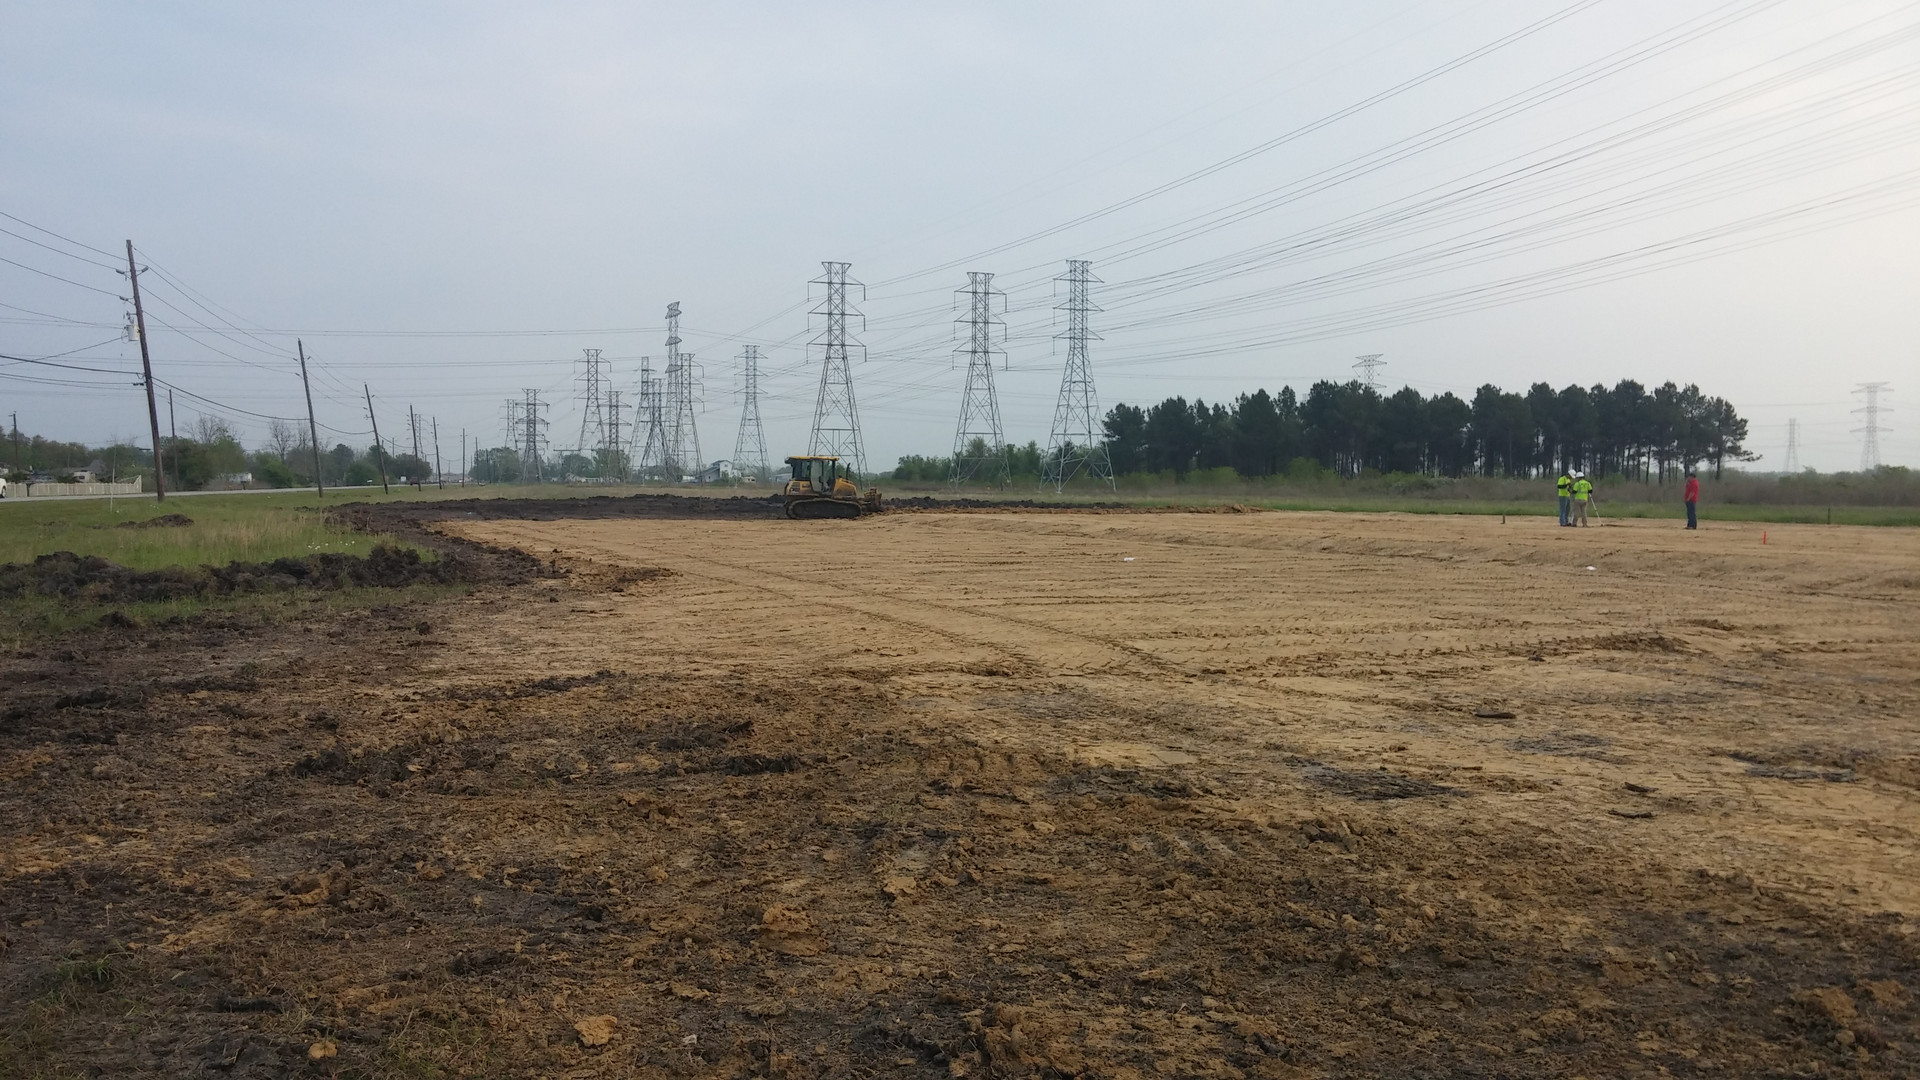 pad site with dozer in distance